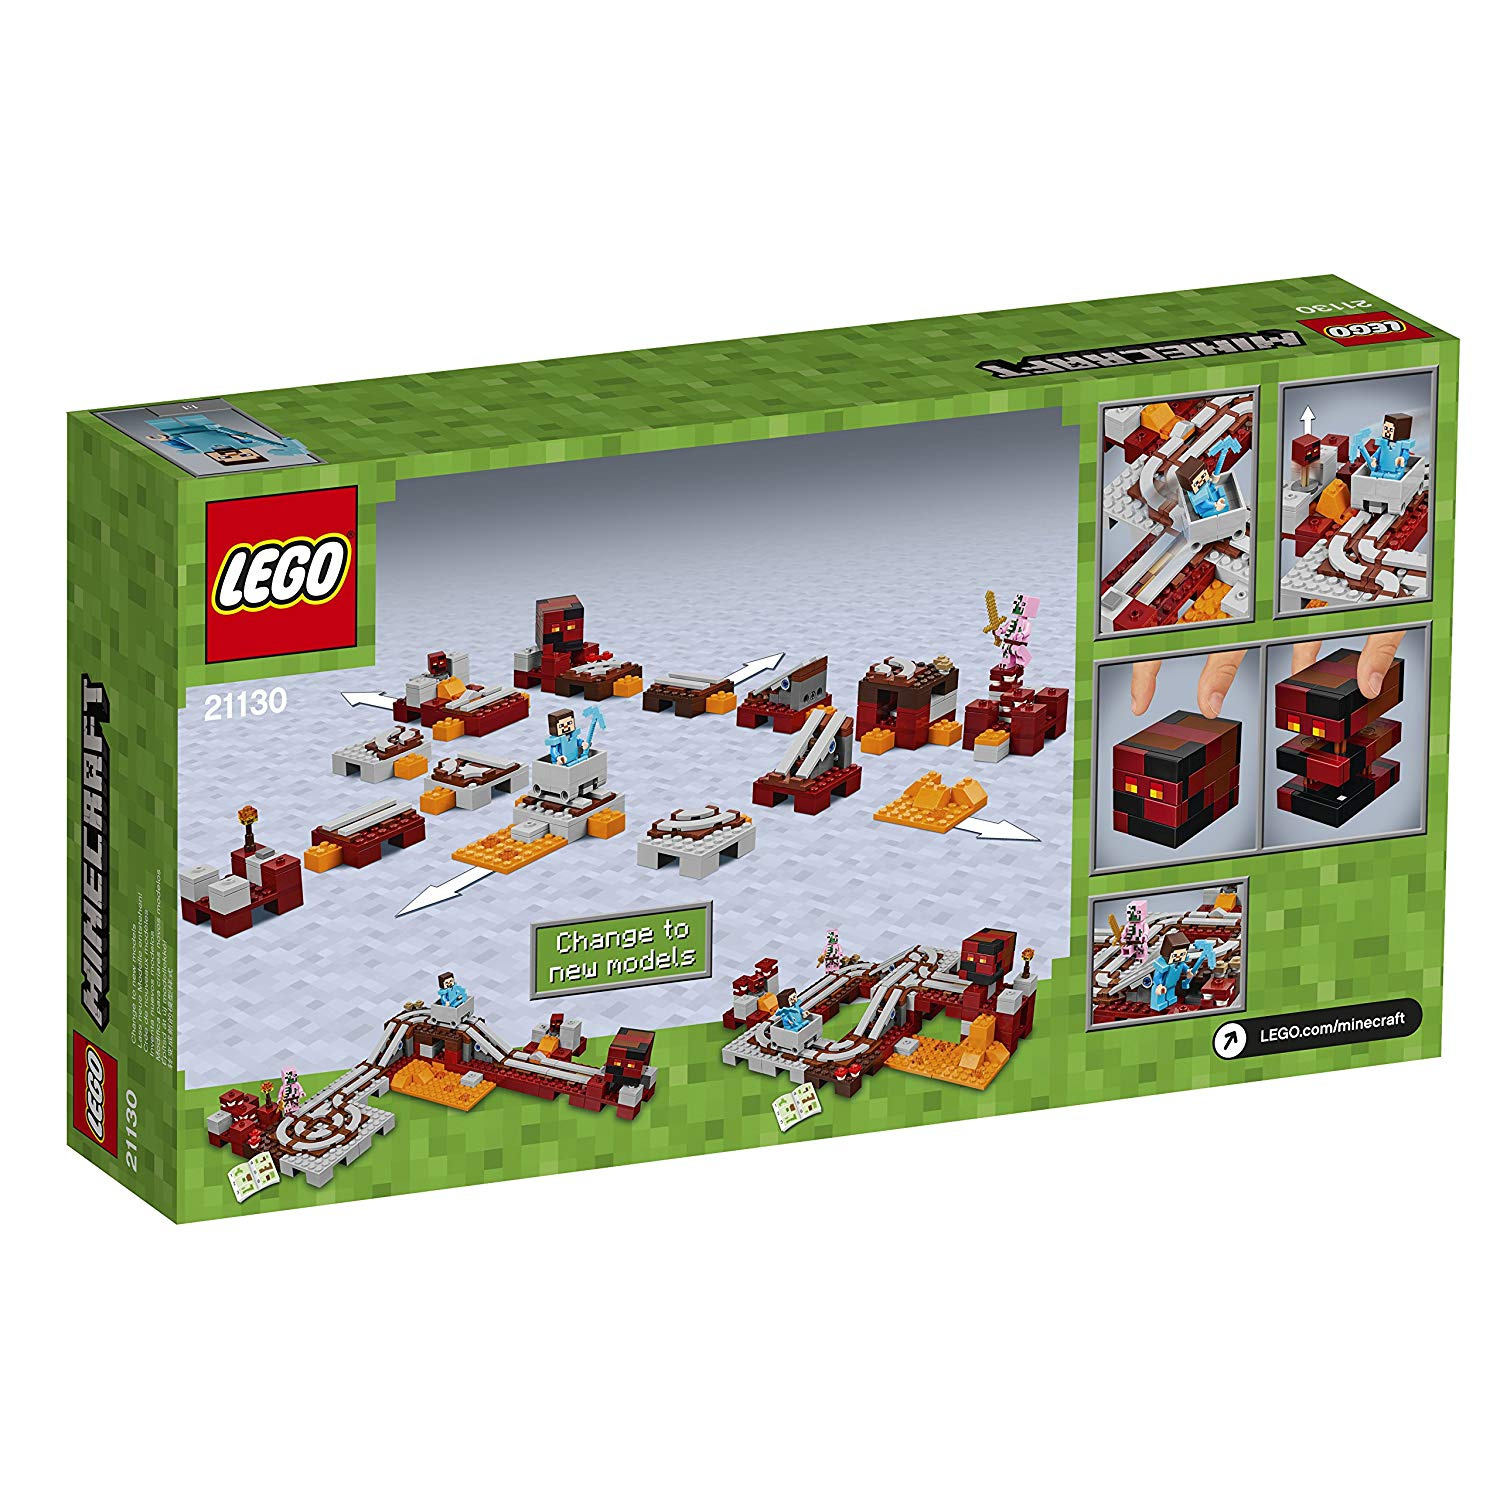 21130 The Nether Railway By Lego Shop Online For Toys In Singapore